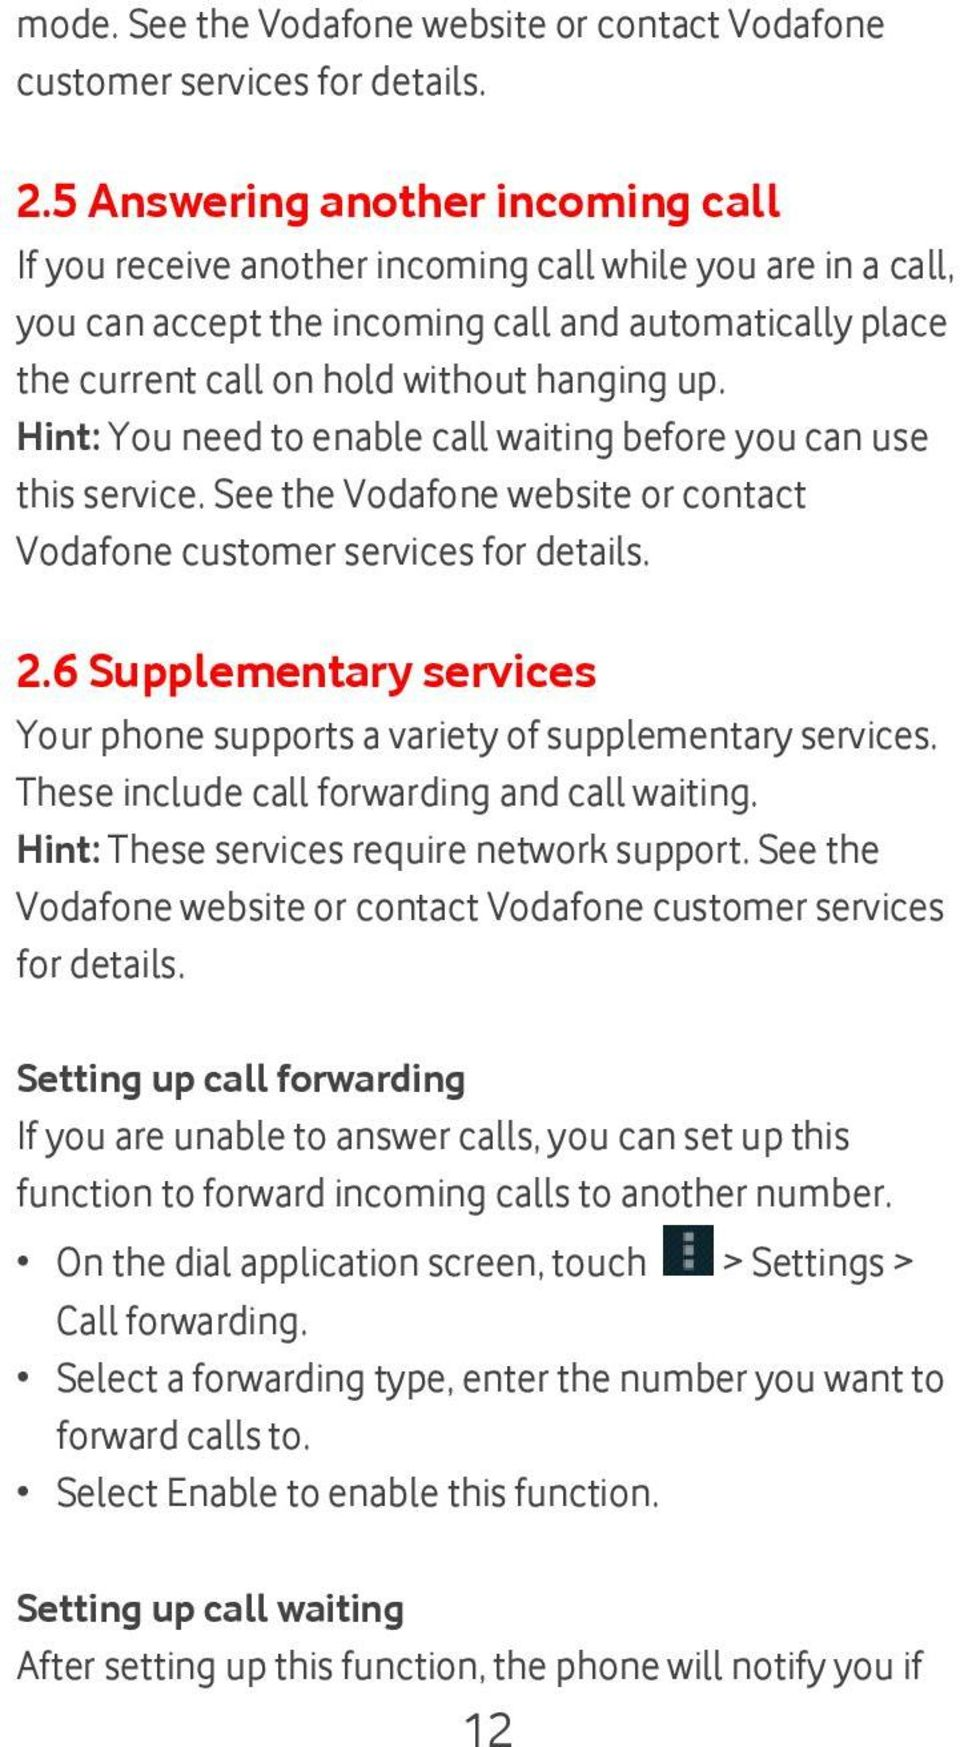 Hint: You need to enable call waiting before you can use this service. See the Vodafone website or contact Vodafone customer services for details. 2.